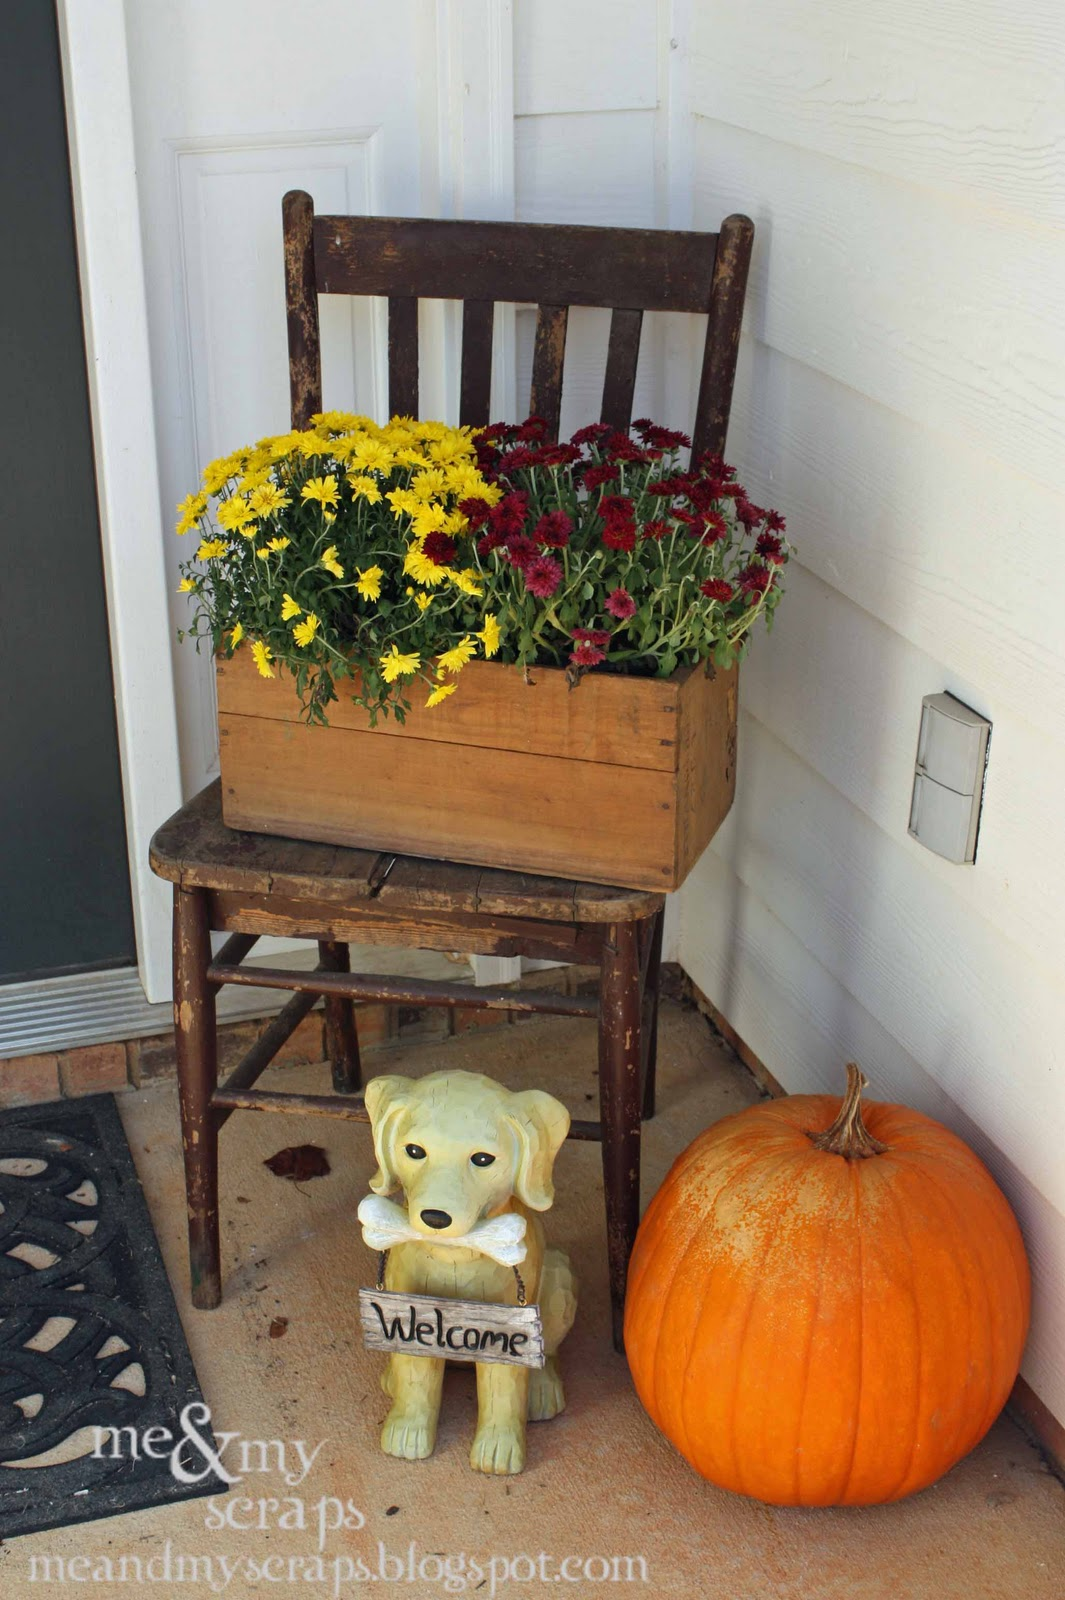 Vintage decor makes great things to put on a front porch. Old vintage chair with a crate for a fall colored flowers. Pumpkin sitting on the porch and a dog statue holding a welcome sign